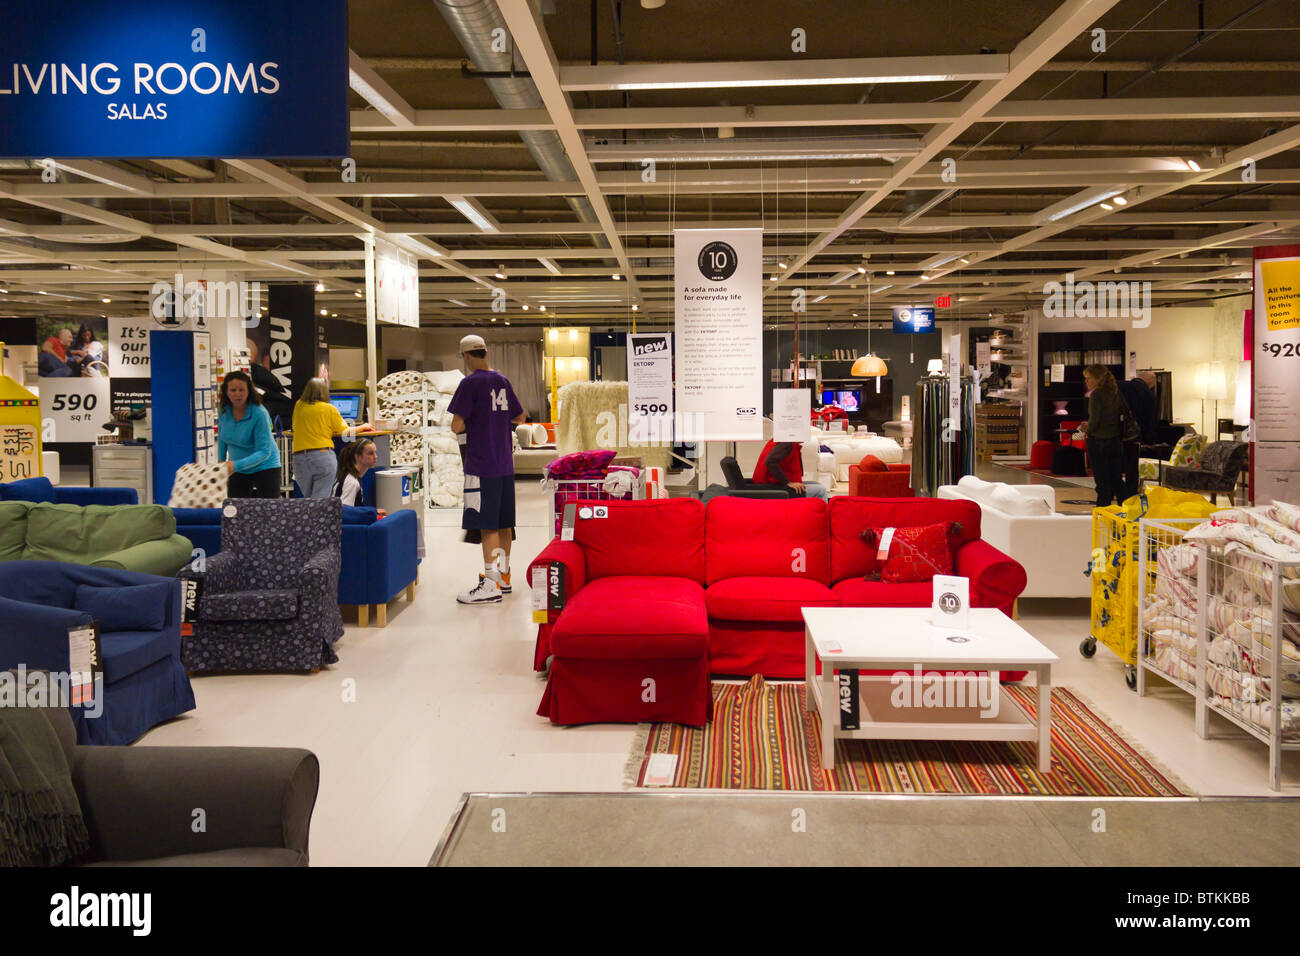 Ikea Furniture Warehouse Store Plymouth Meeting Pennsylvania Usa